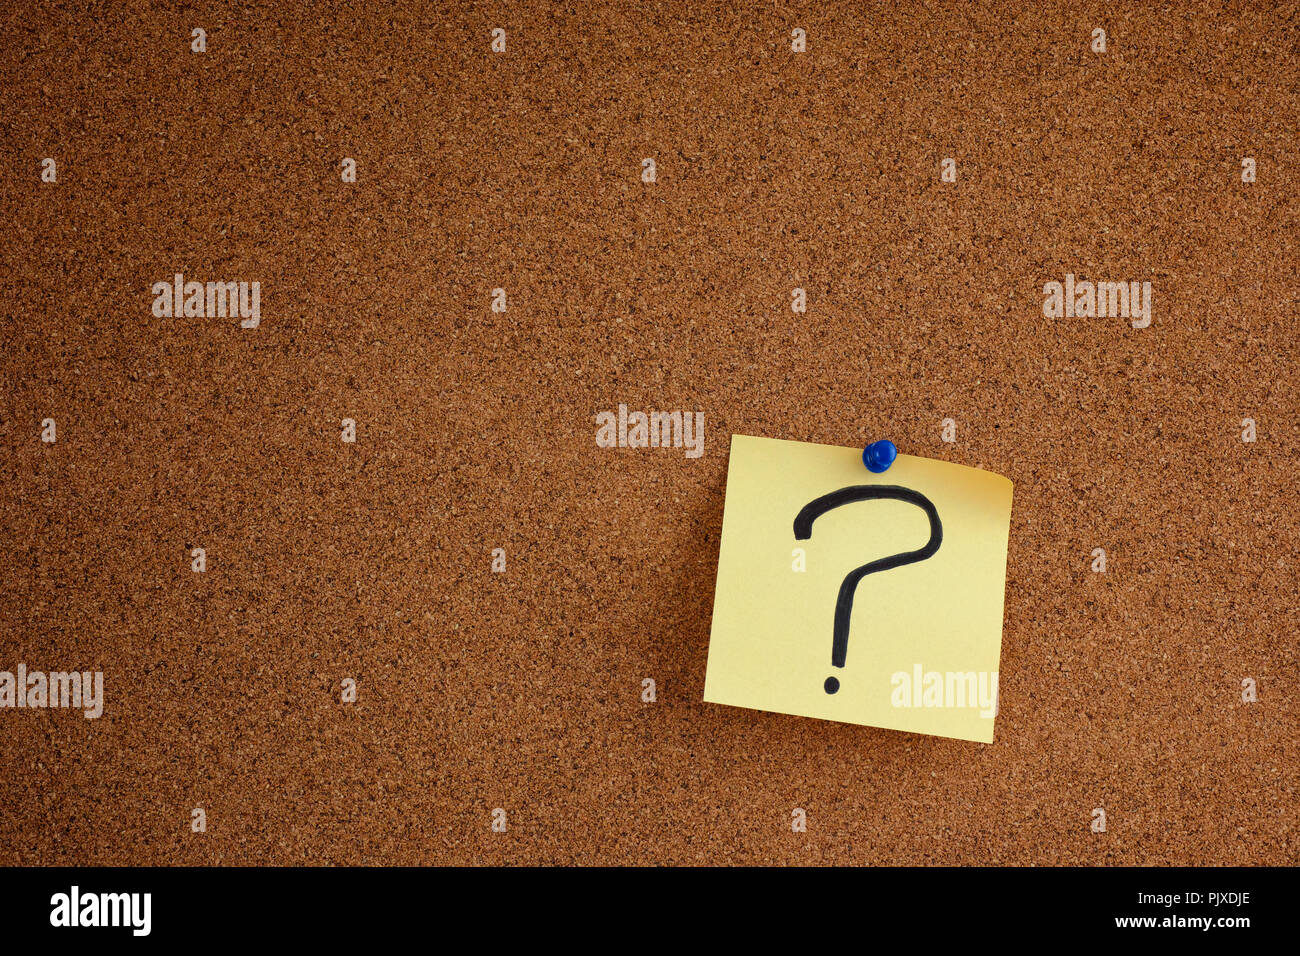 Post it note with question mark on bulletin board. Close up. - Stock Image